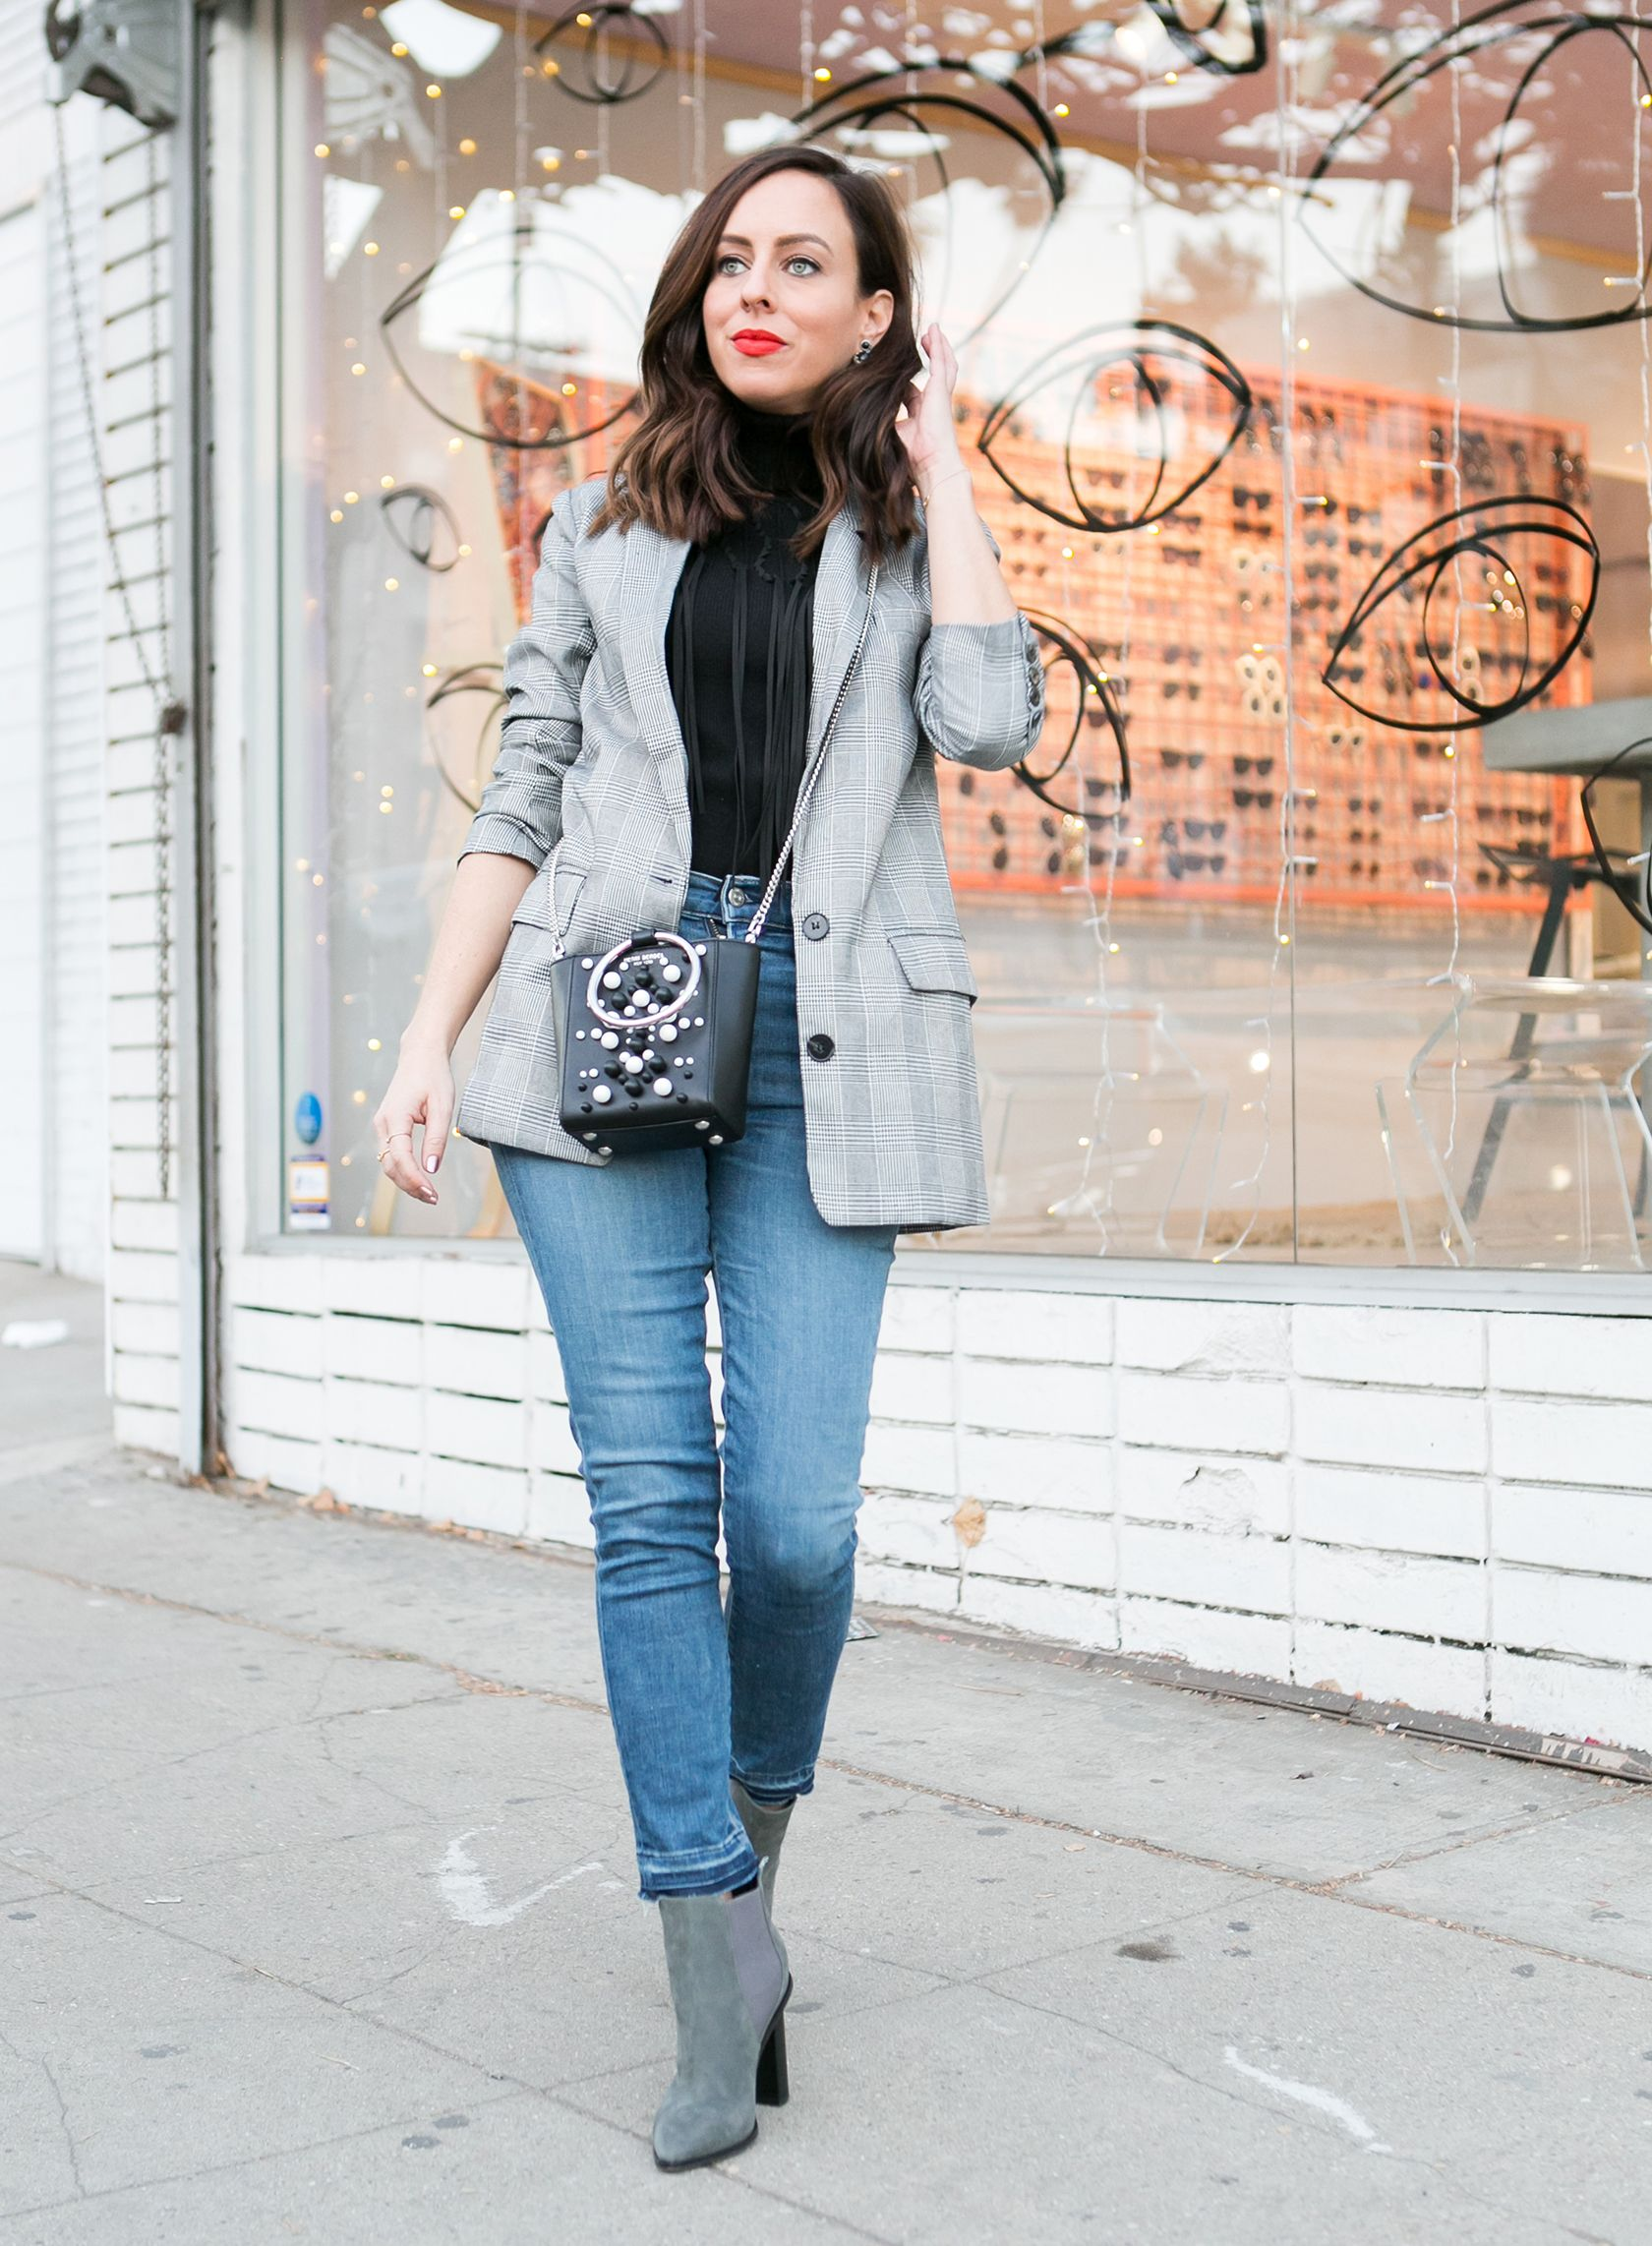 4264a3acf36d Sydne Style shows how to wear the plaid blazer trend with skinny jeans   turtleneck  plaid  blazer  jeans  casualoutfits  booties